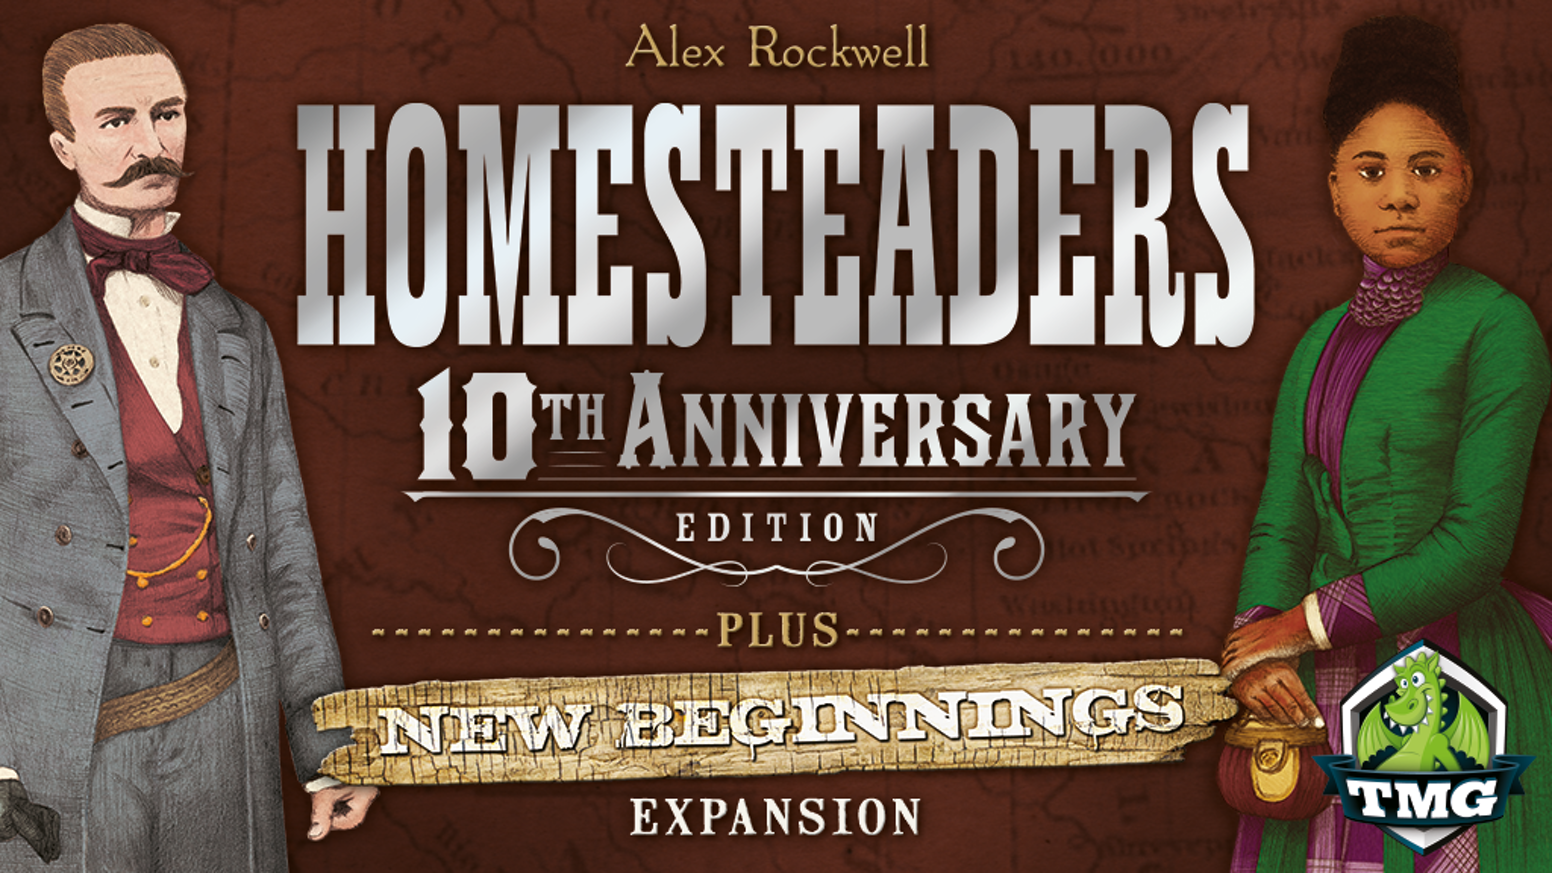 After being out of print for far too long, Homesteaders is back in an upgraded Anniversary Edition, with a brand new expansion!